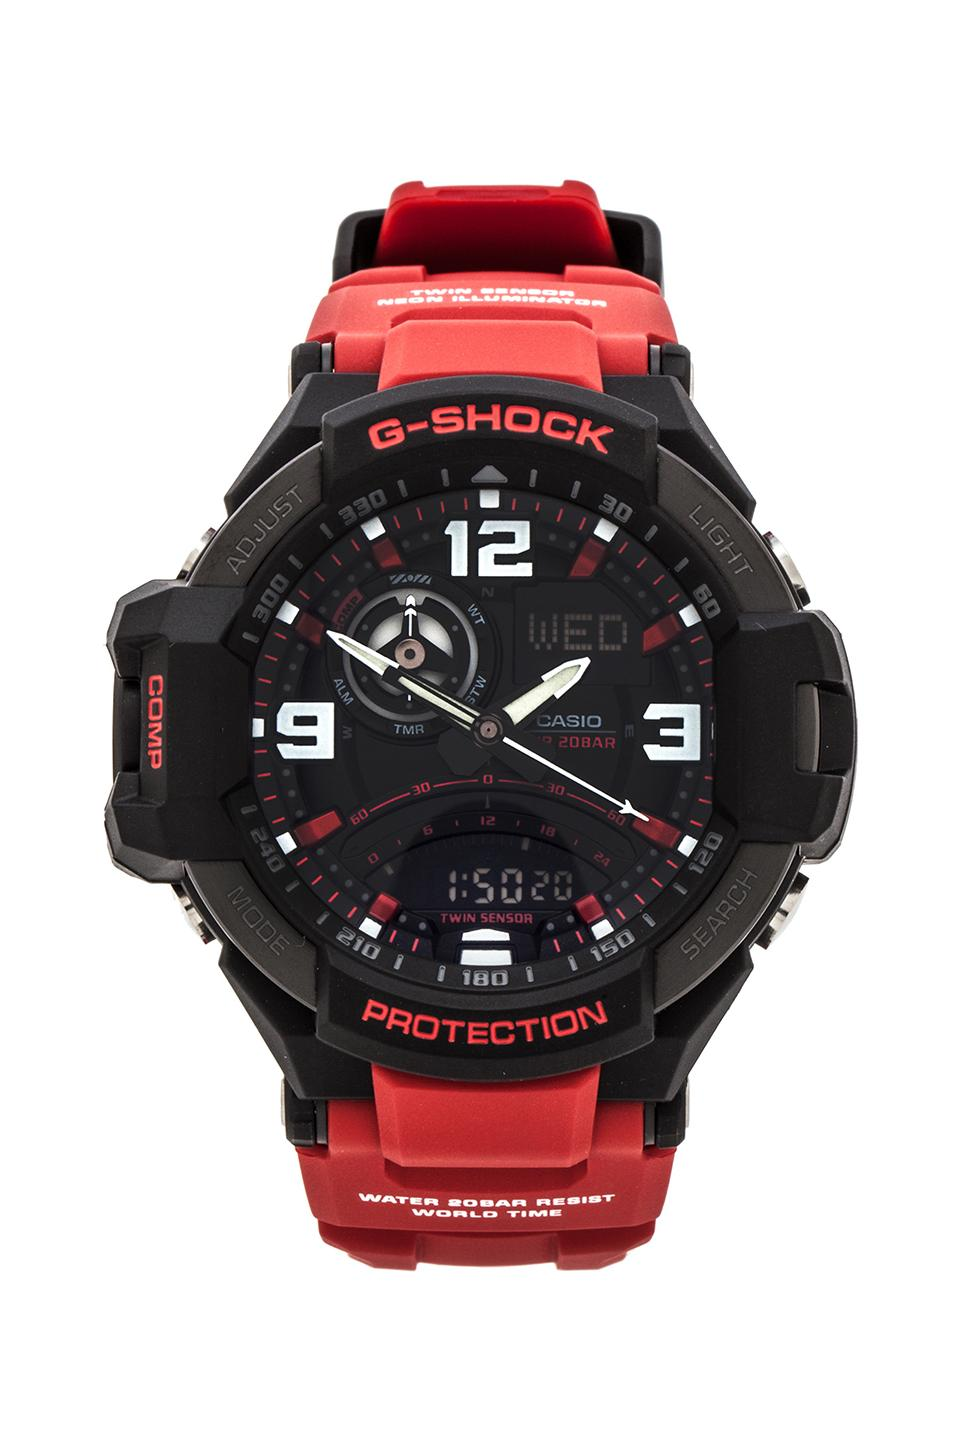 GShock Watches  Watchescom is an Official Casio Dealer